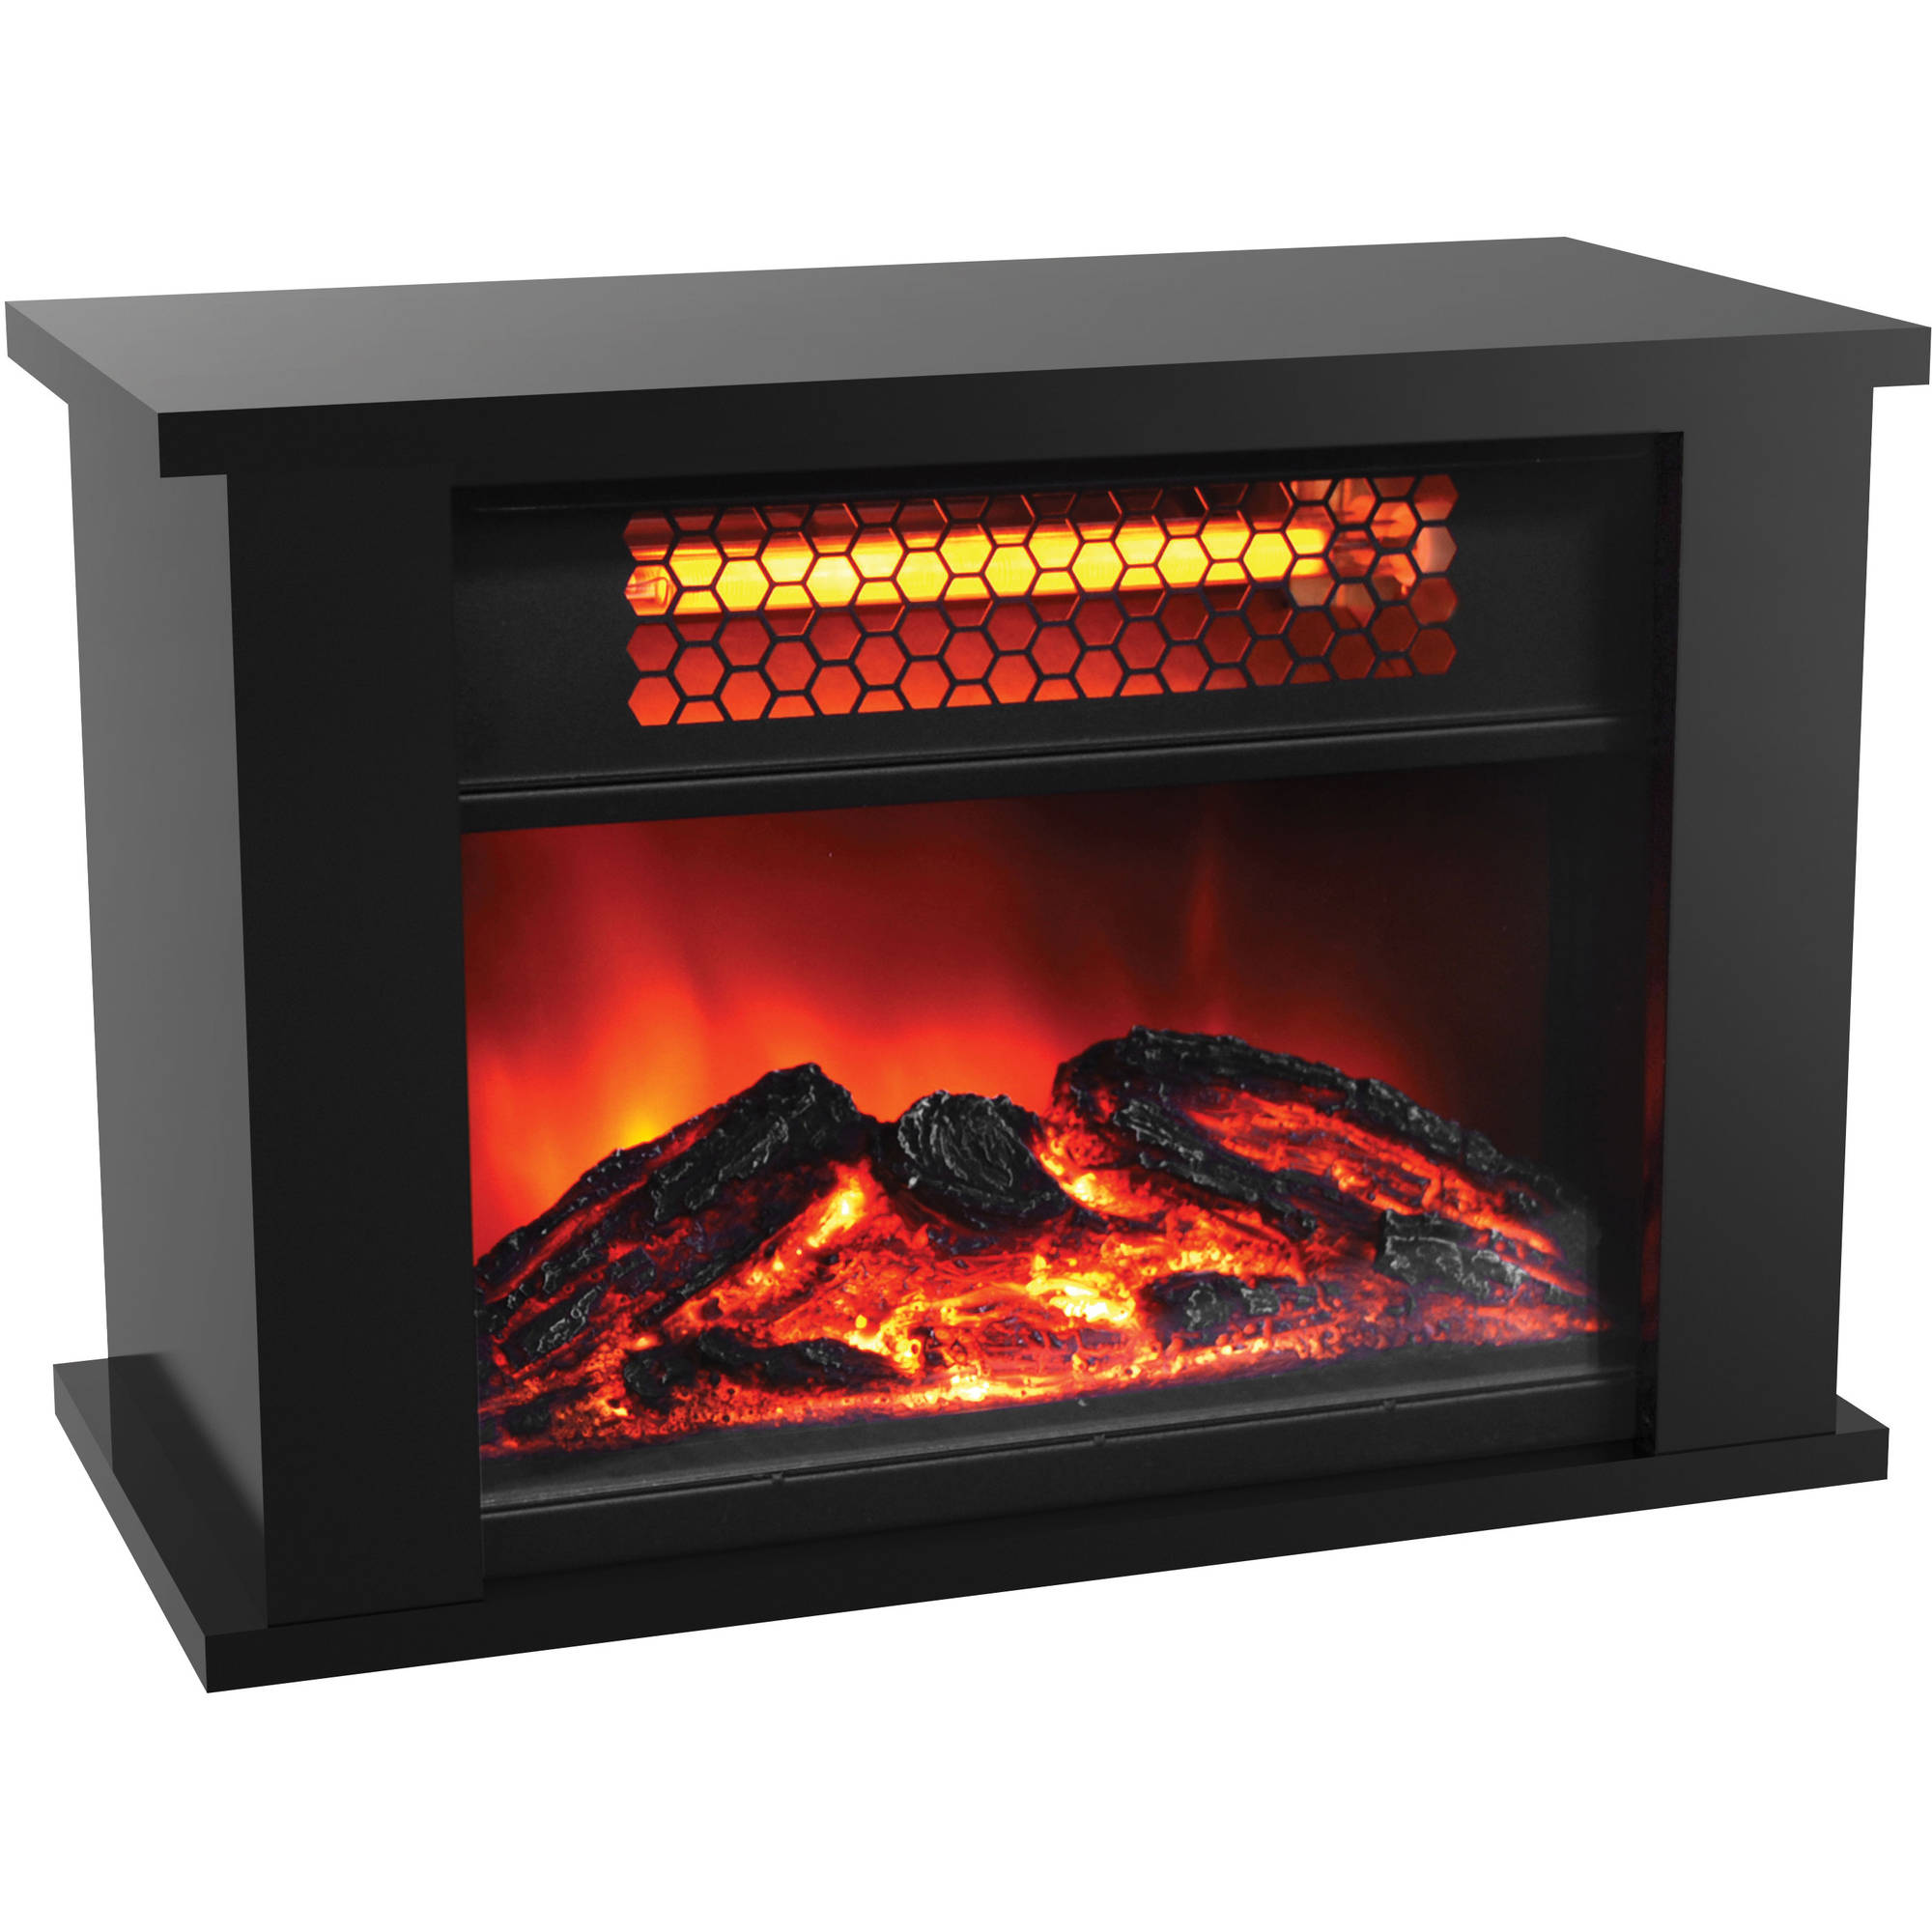 LifePro Mini Infrared Fireplace Heater, Black - Walmart.com